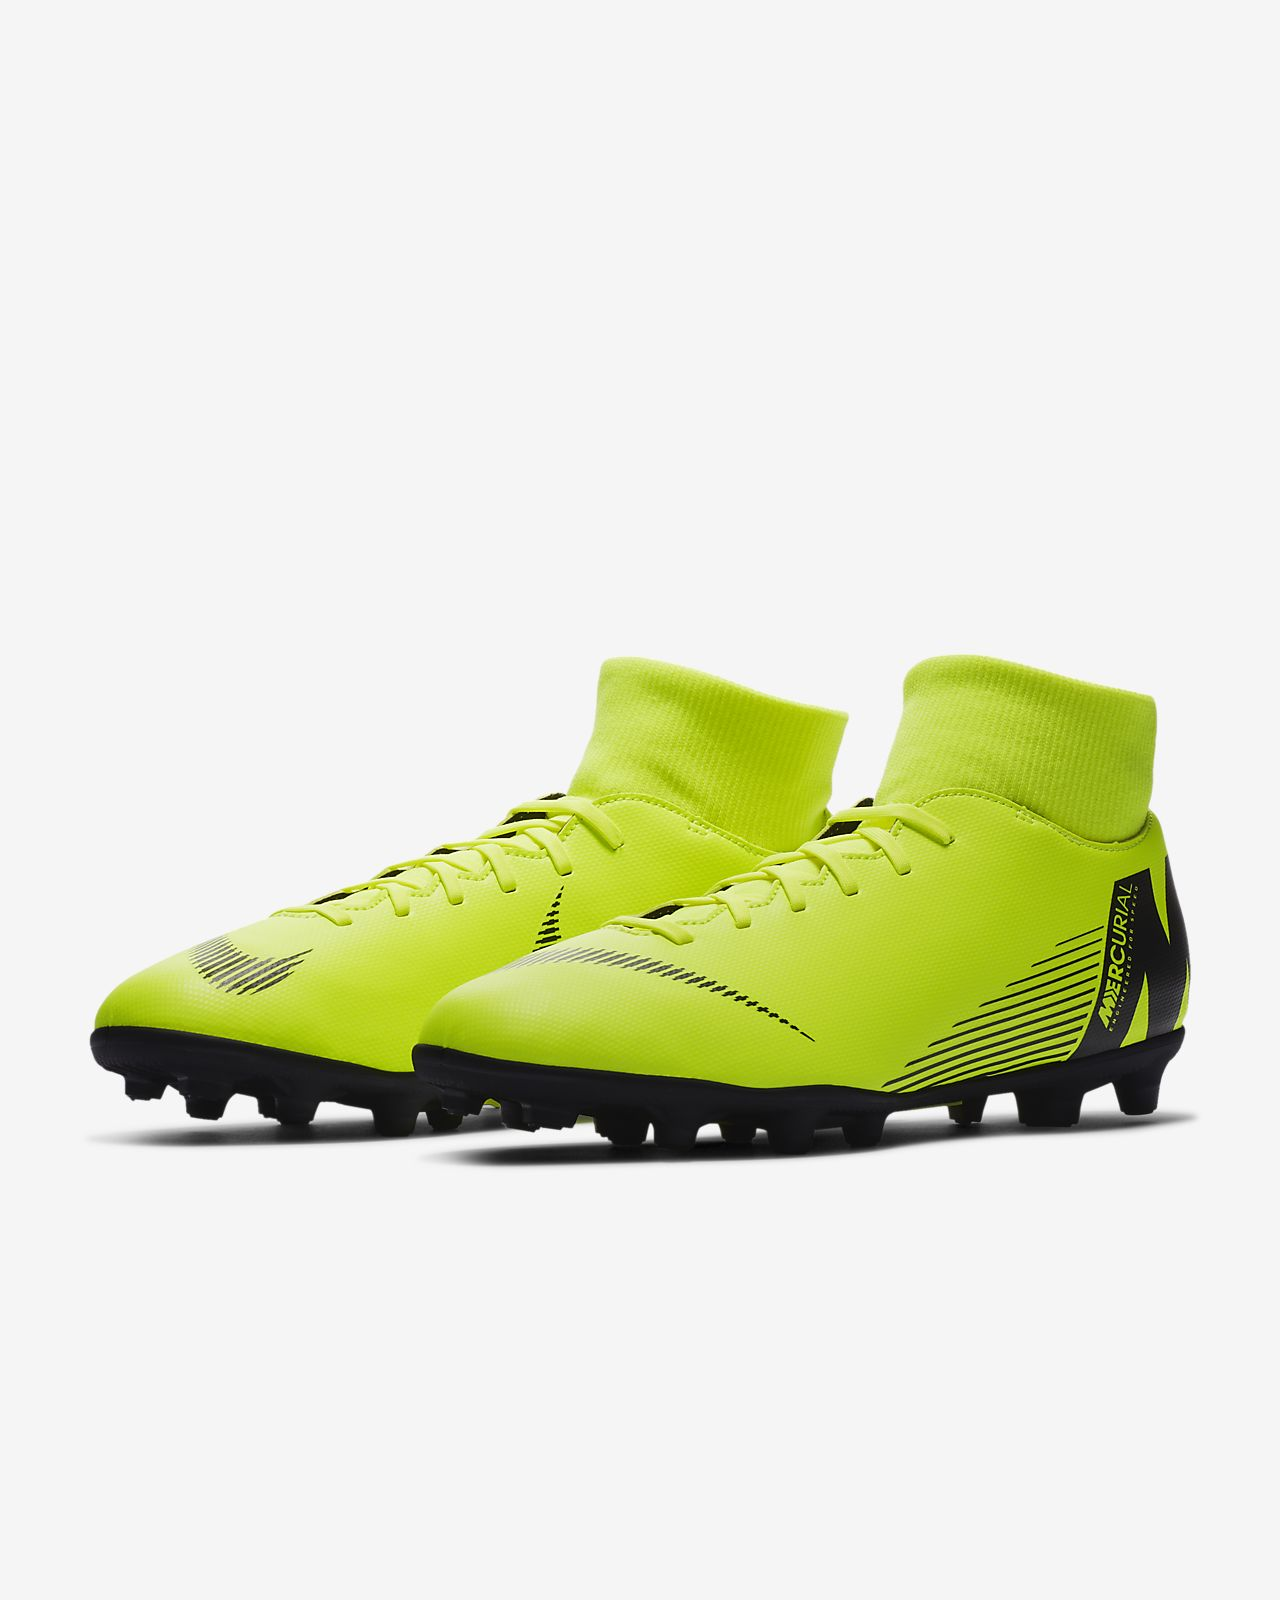 e231326416098 ... Calzado de fútbol para múltiples superficies Nike Mercurial Superfly VI  Club